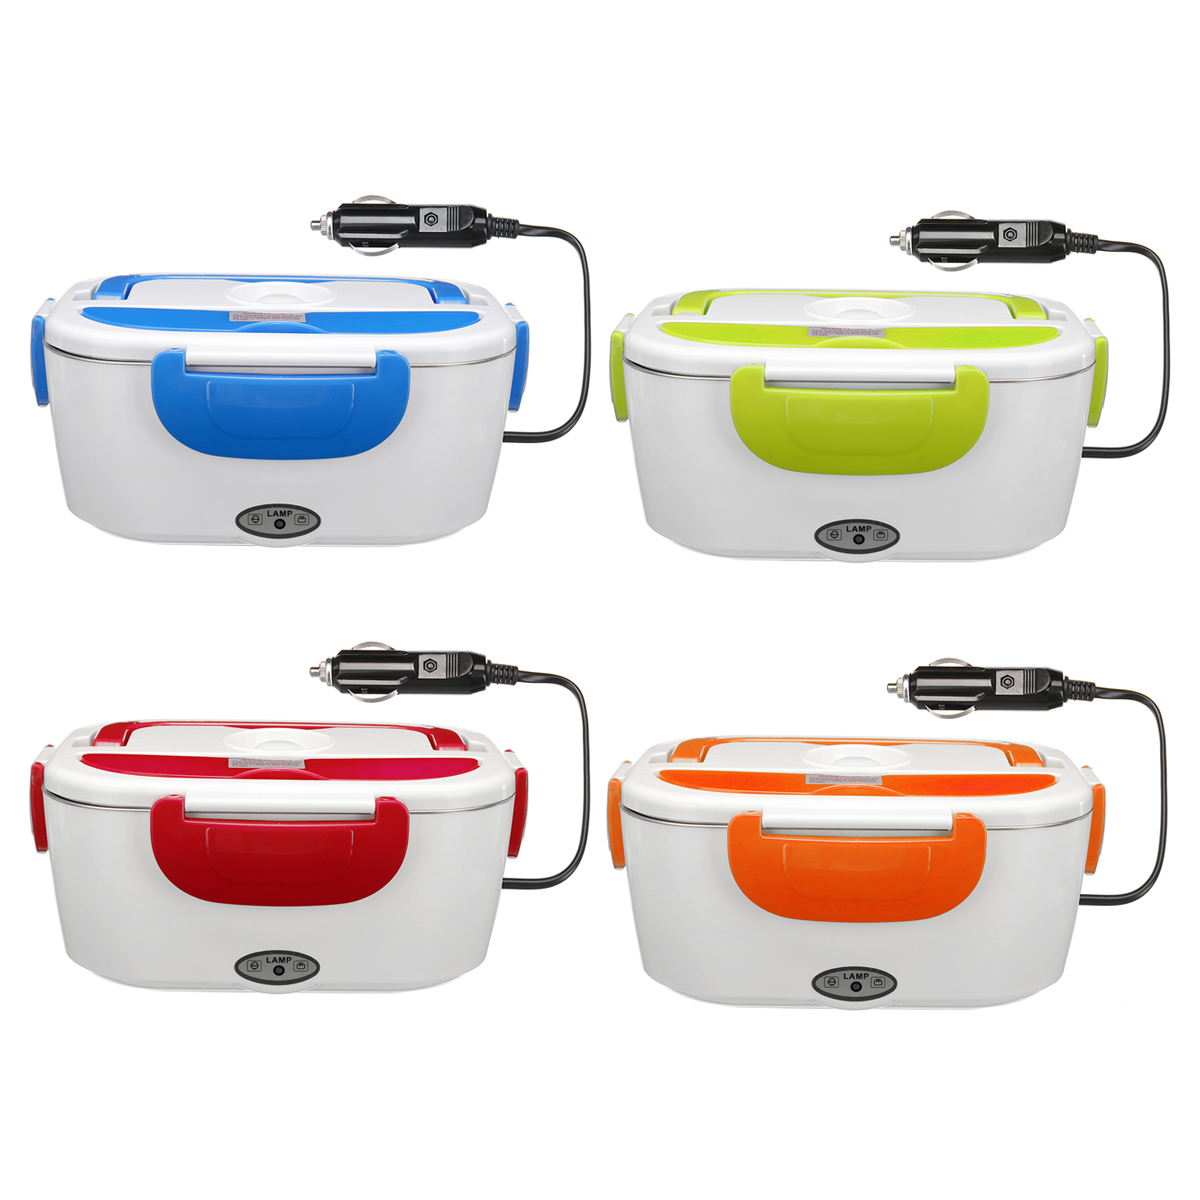 Multi-functional Portable Electric Heating Lunch Box Food Heater Rice Container for Home Office Car